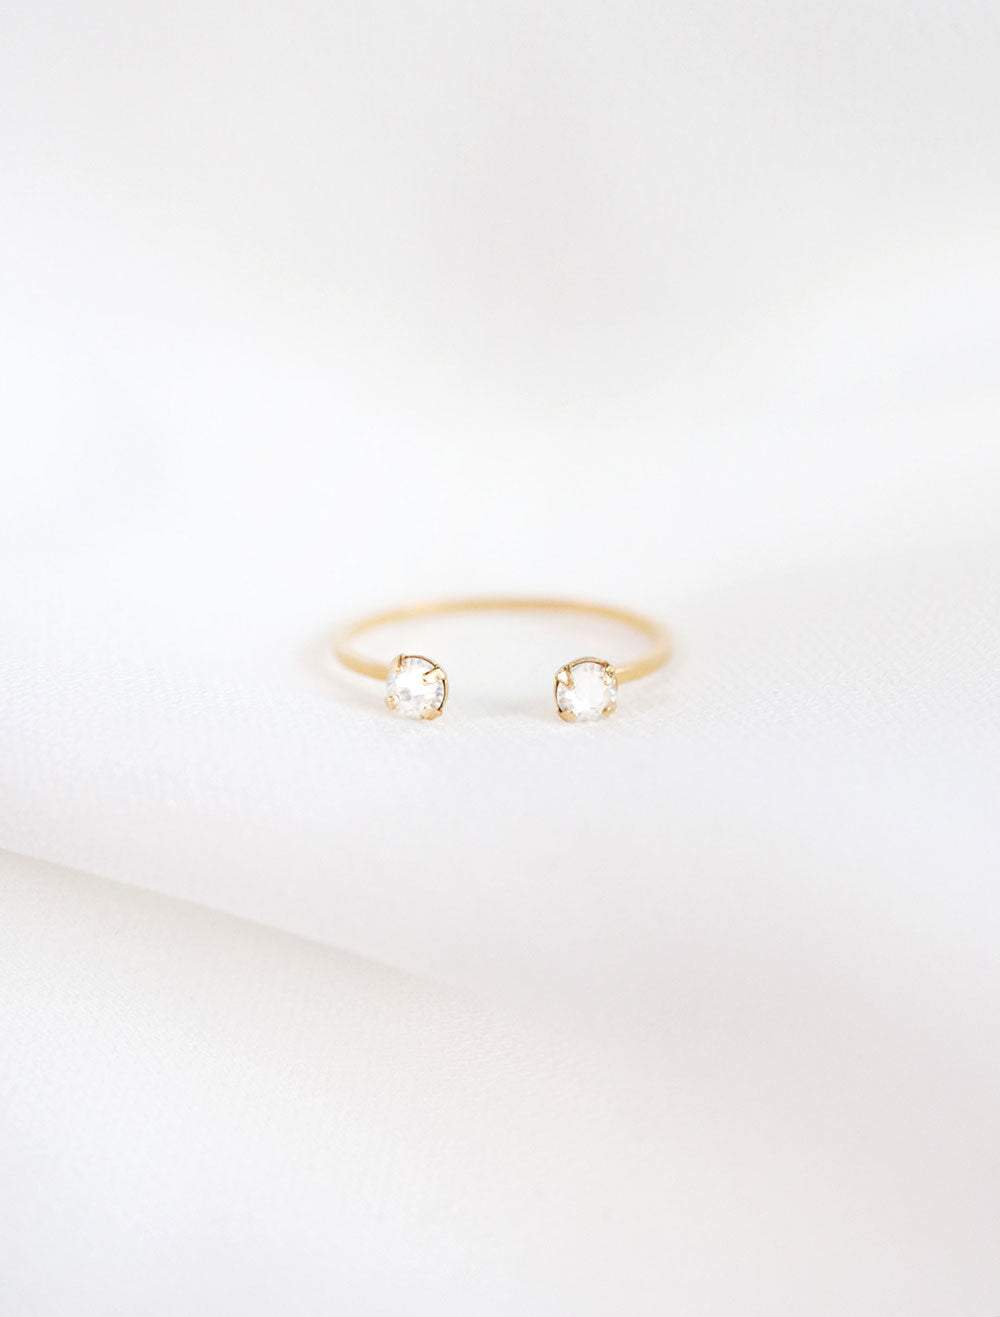 14k gold filled cuff ring with 2 faux diamond crystals